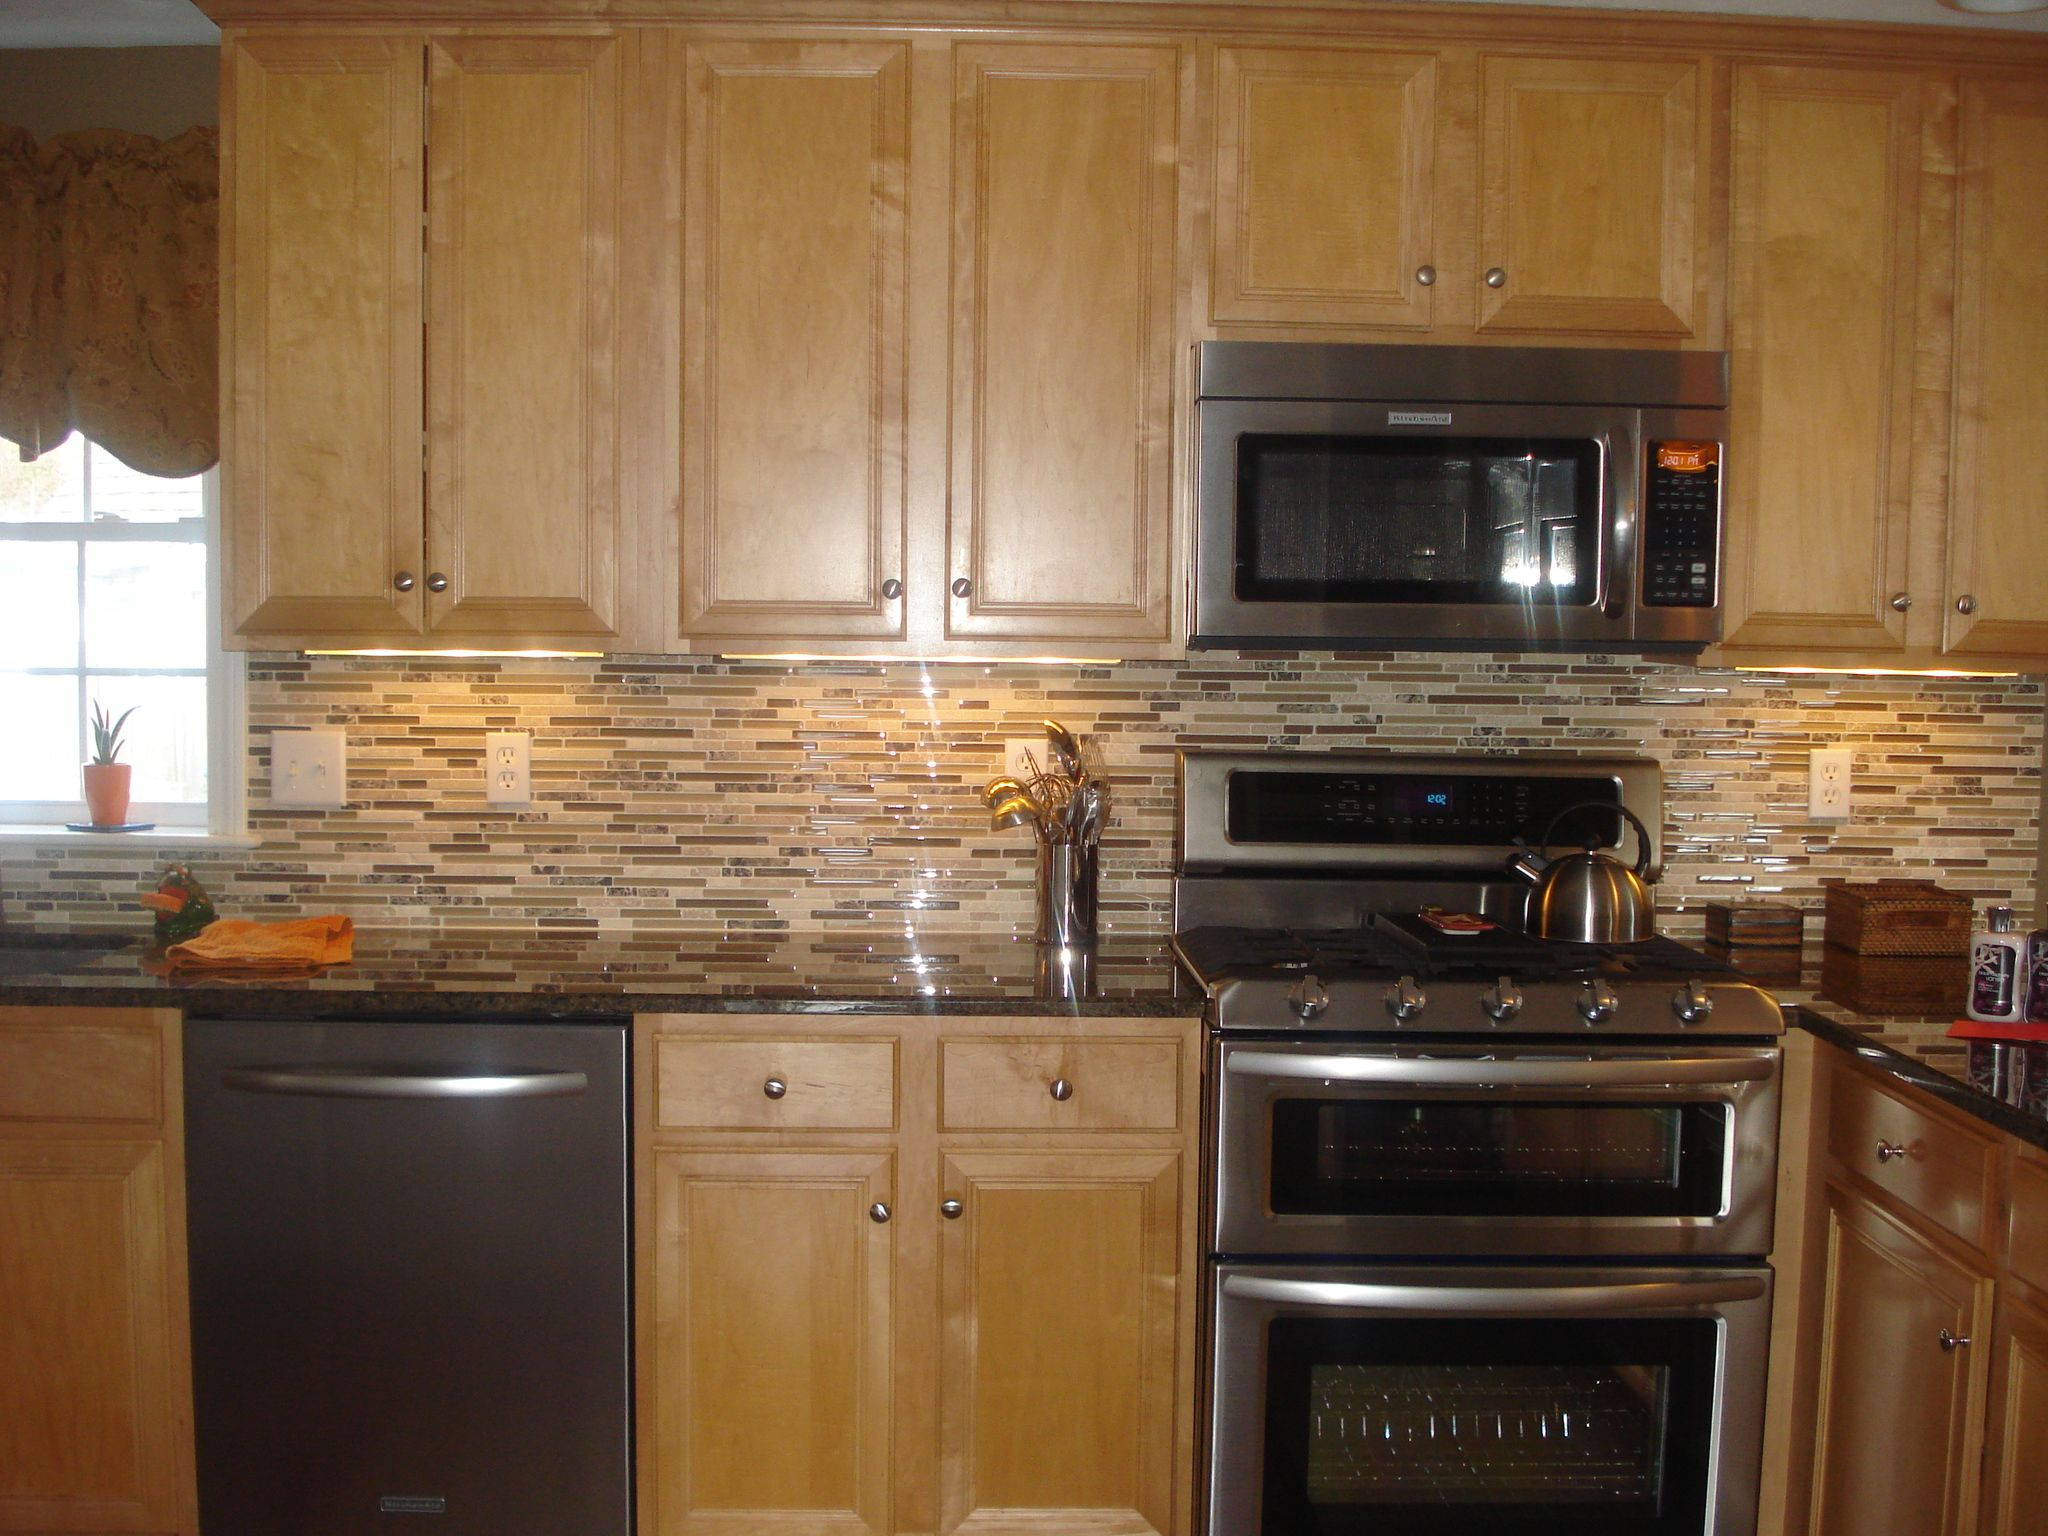 backsplash glass tile brown with brown cabinets |  backsplash